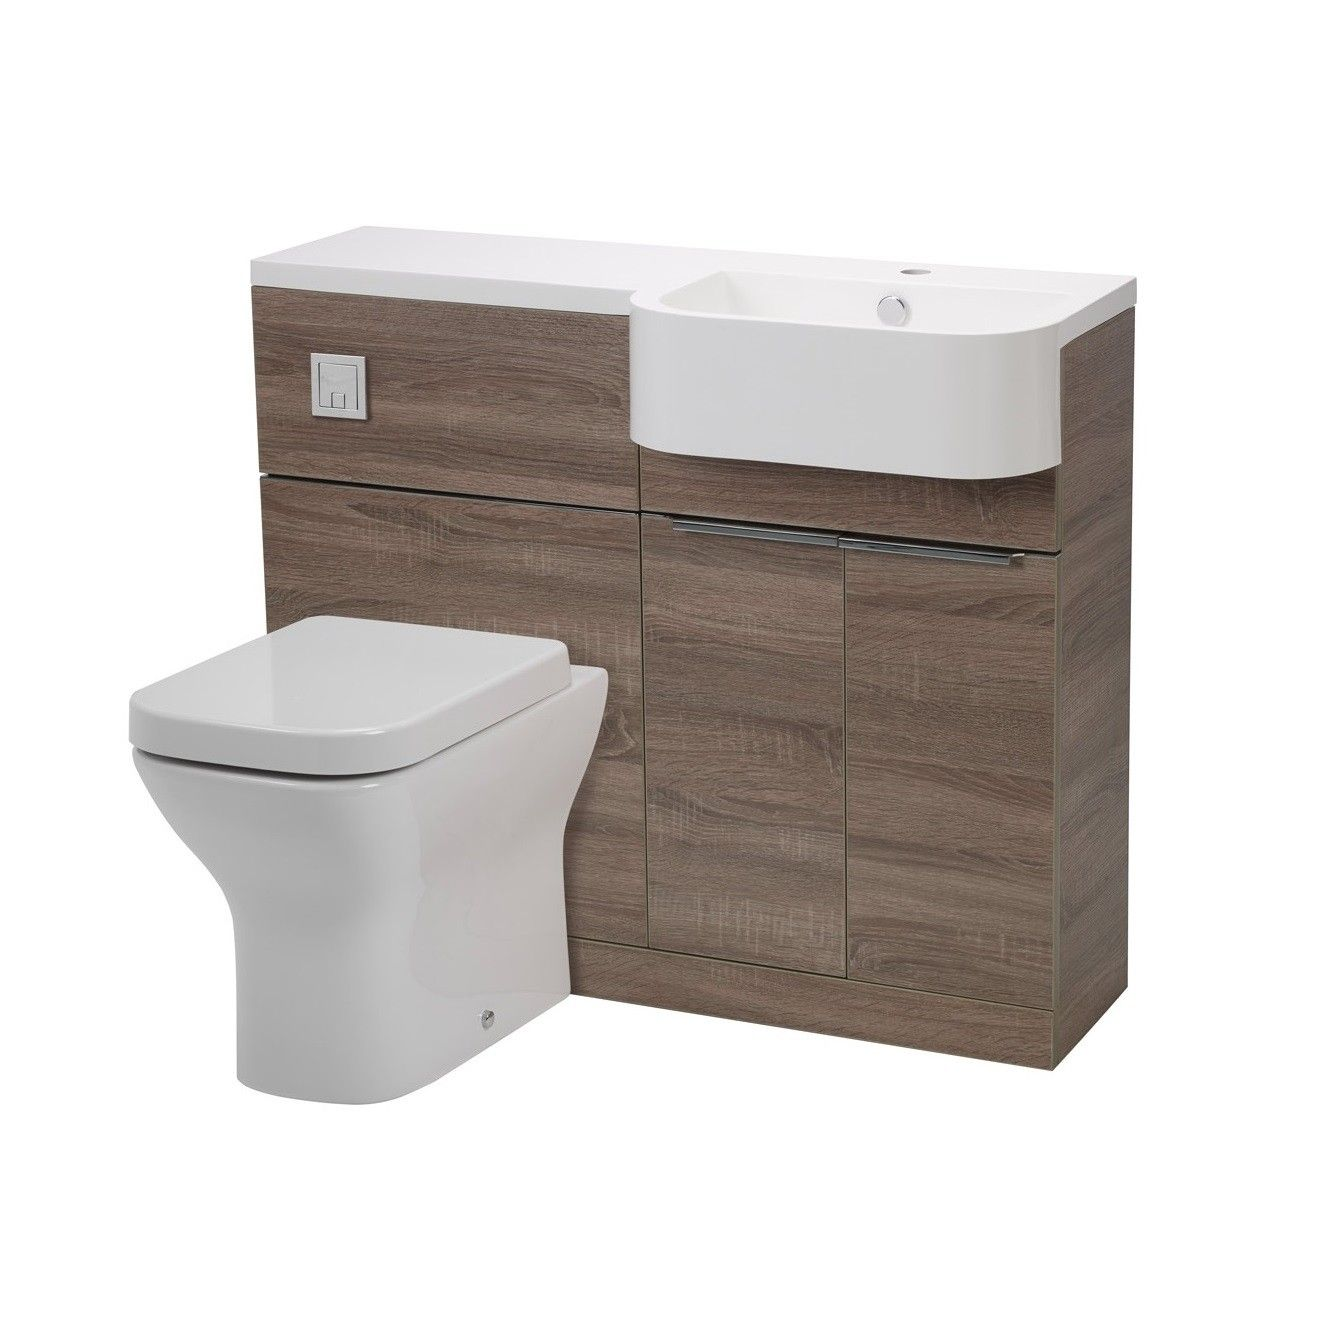 Wc Wastafel Toilet Sink Combination Combination Basin Toilet Units